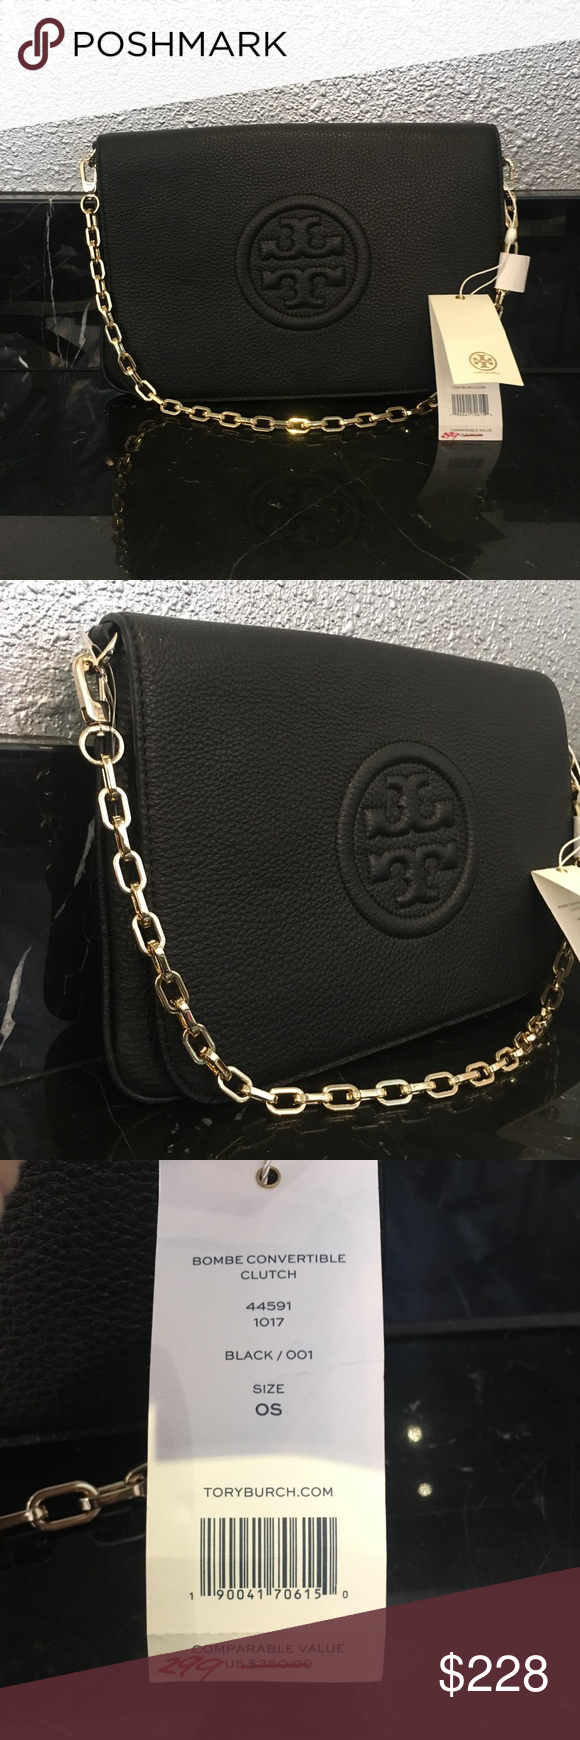 "5c9907040cf2 NEW Tory Burch ""Bombe Convertible Clutch"" Brand new in black leather! Tory  Burch"